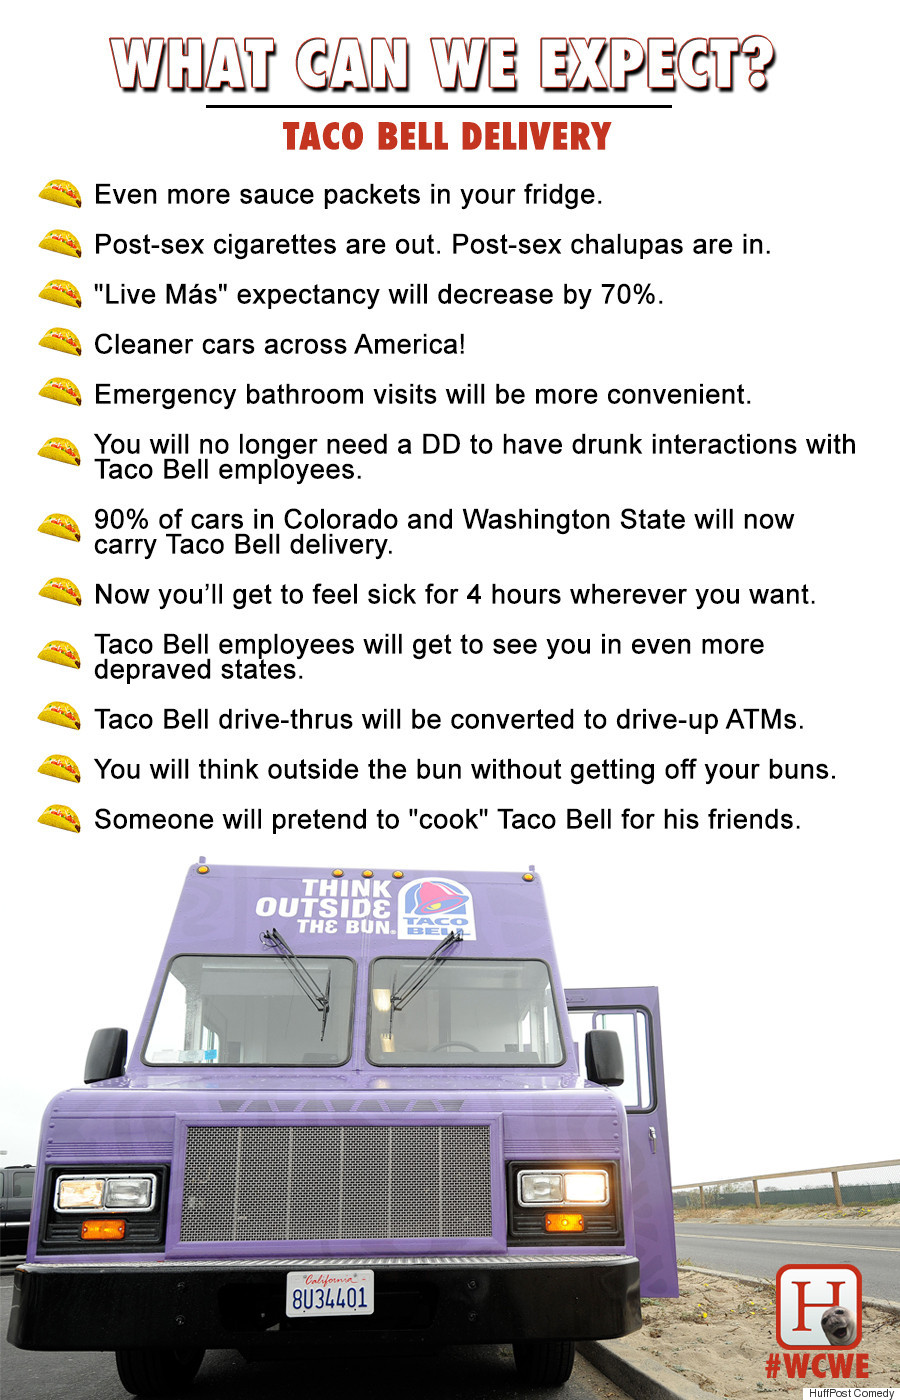 wcwe taco bell delivery